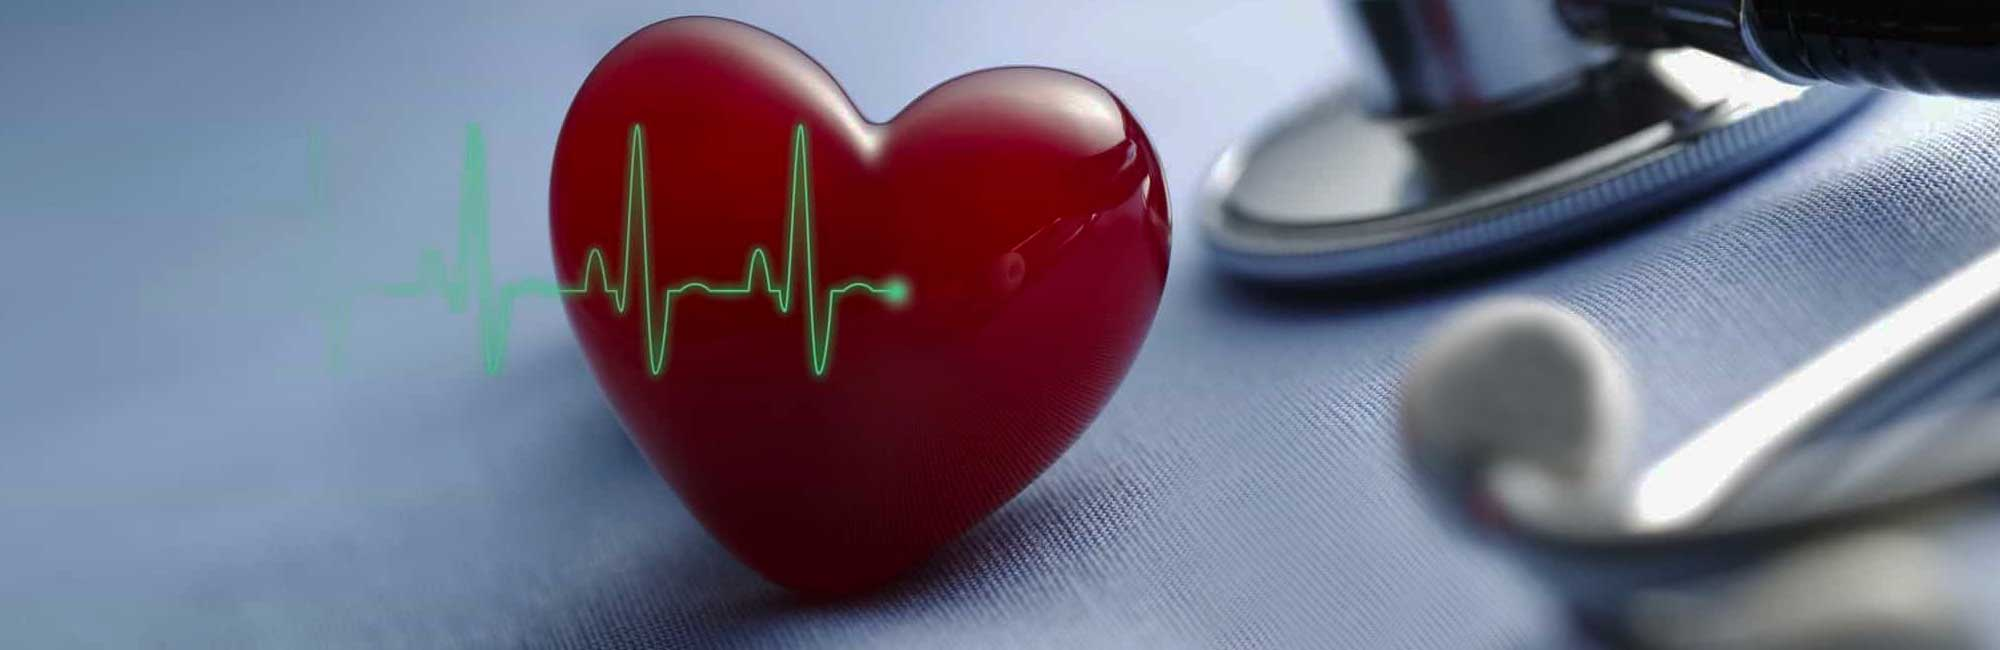 cardiocenter-napoli-check-up-cuore-completo